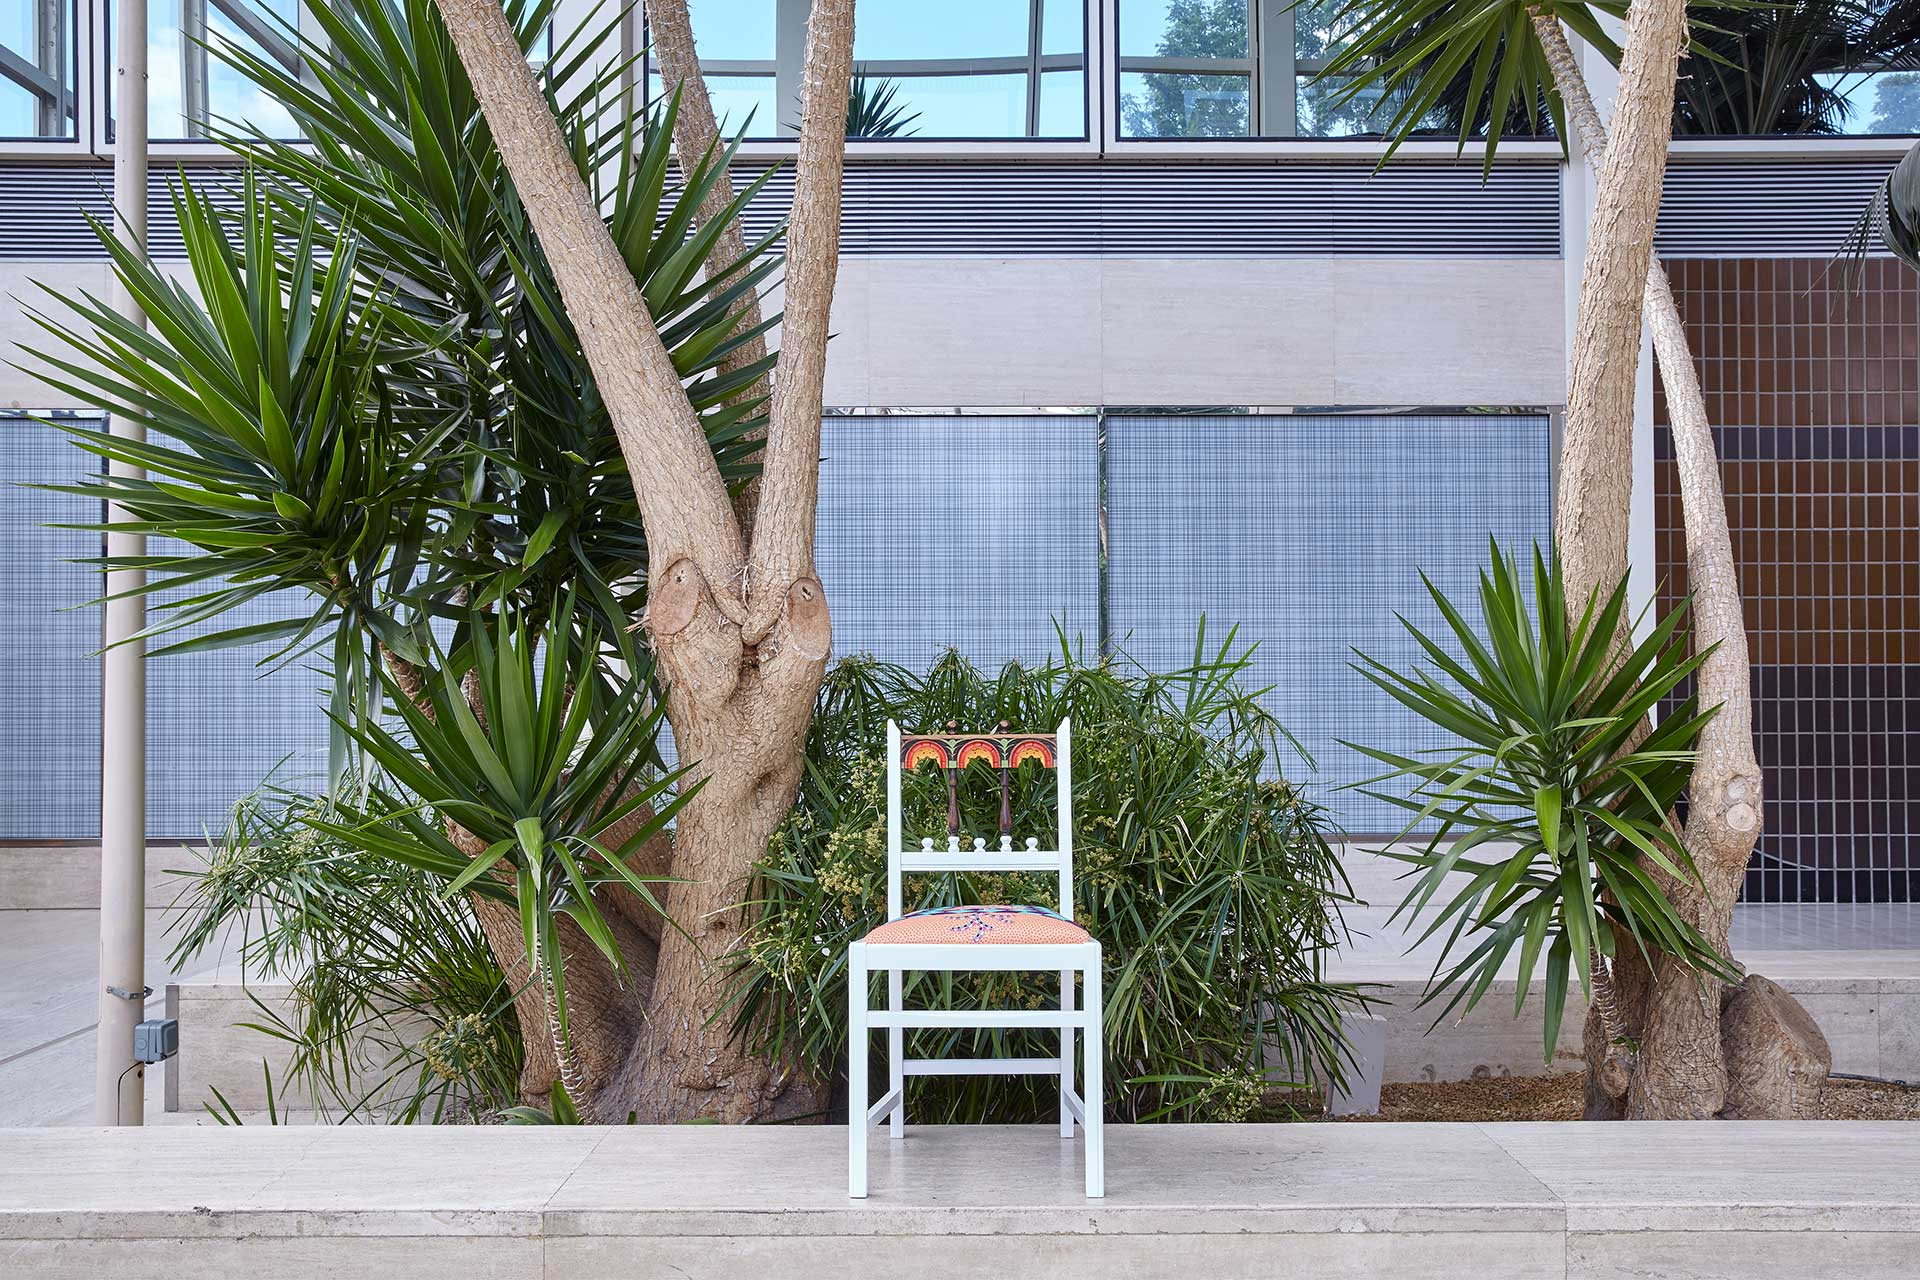 A chair sitting on a curb under some palm trees.